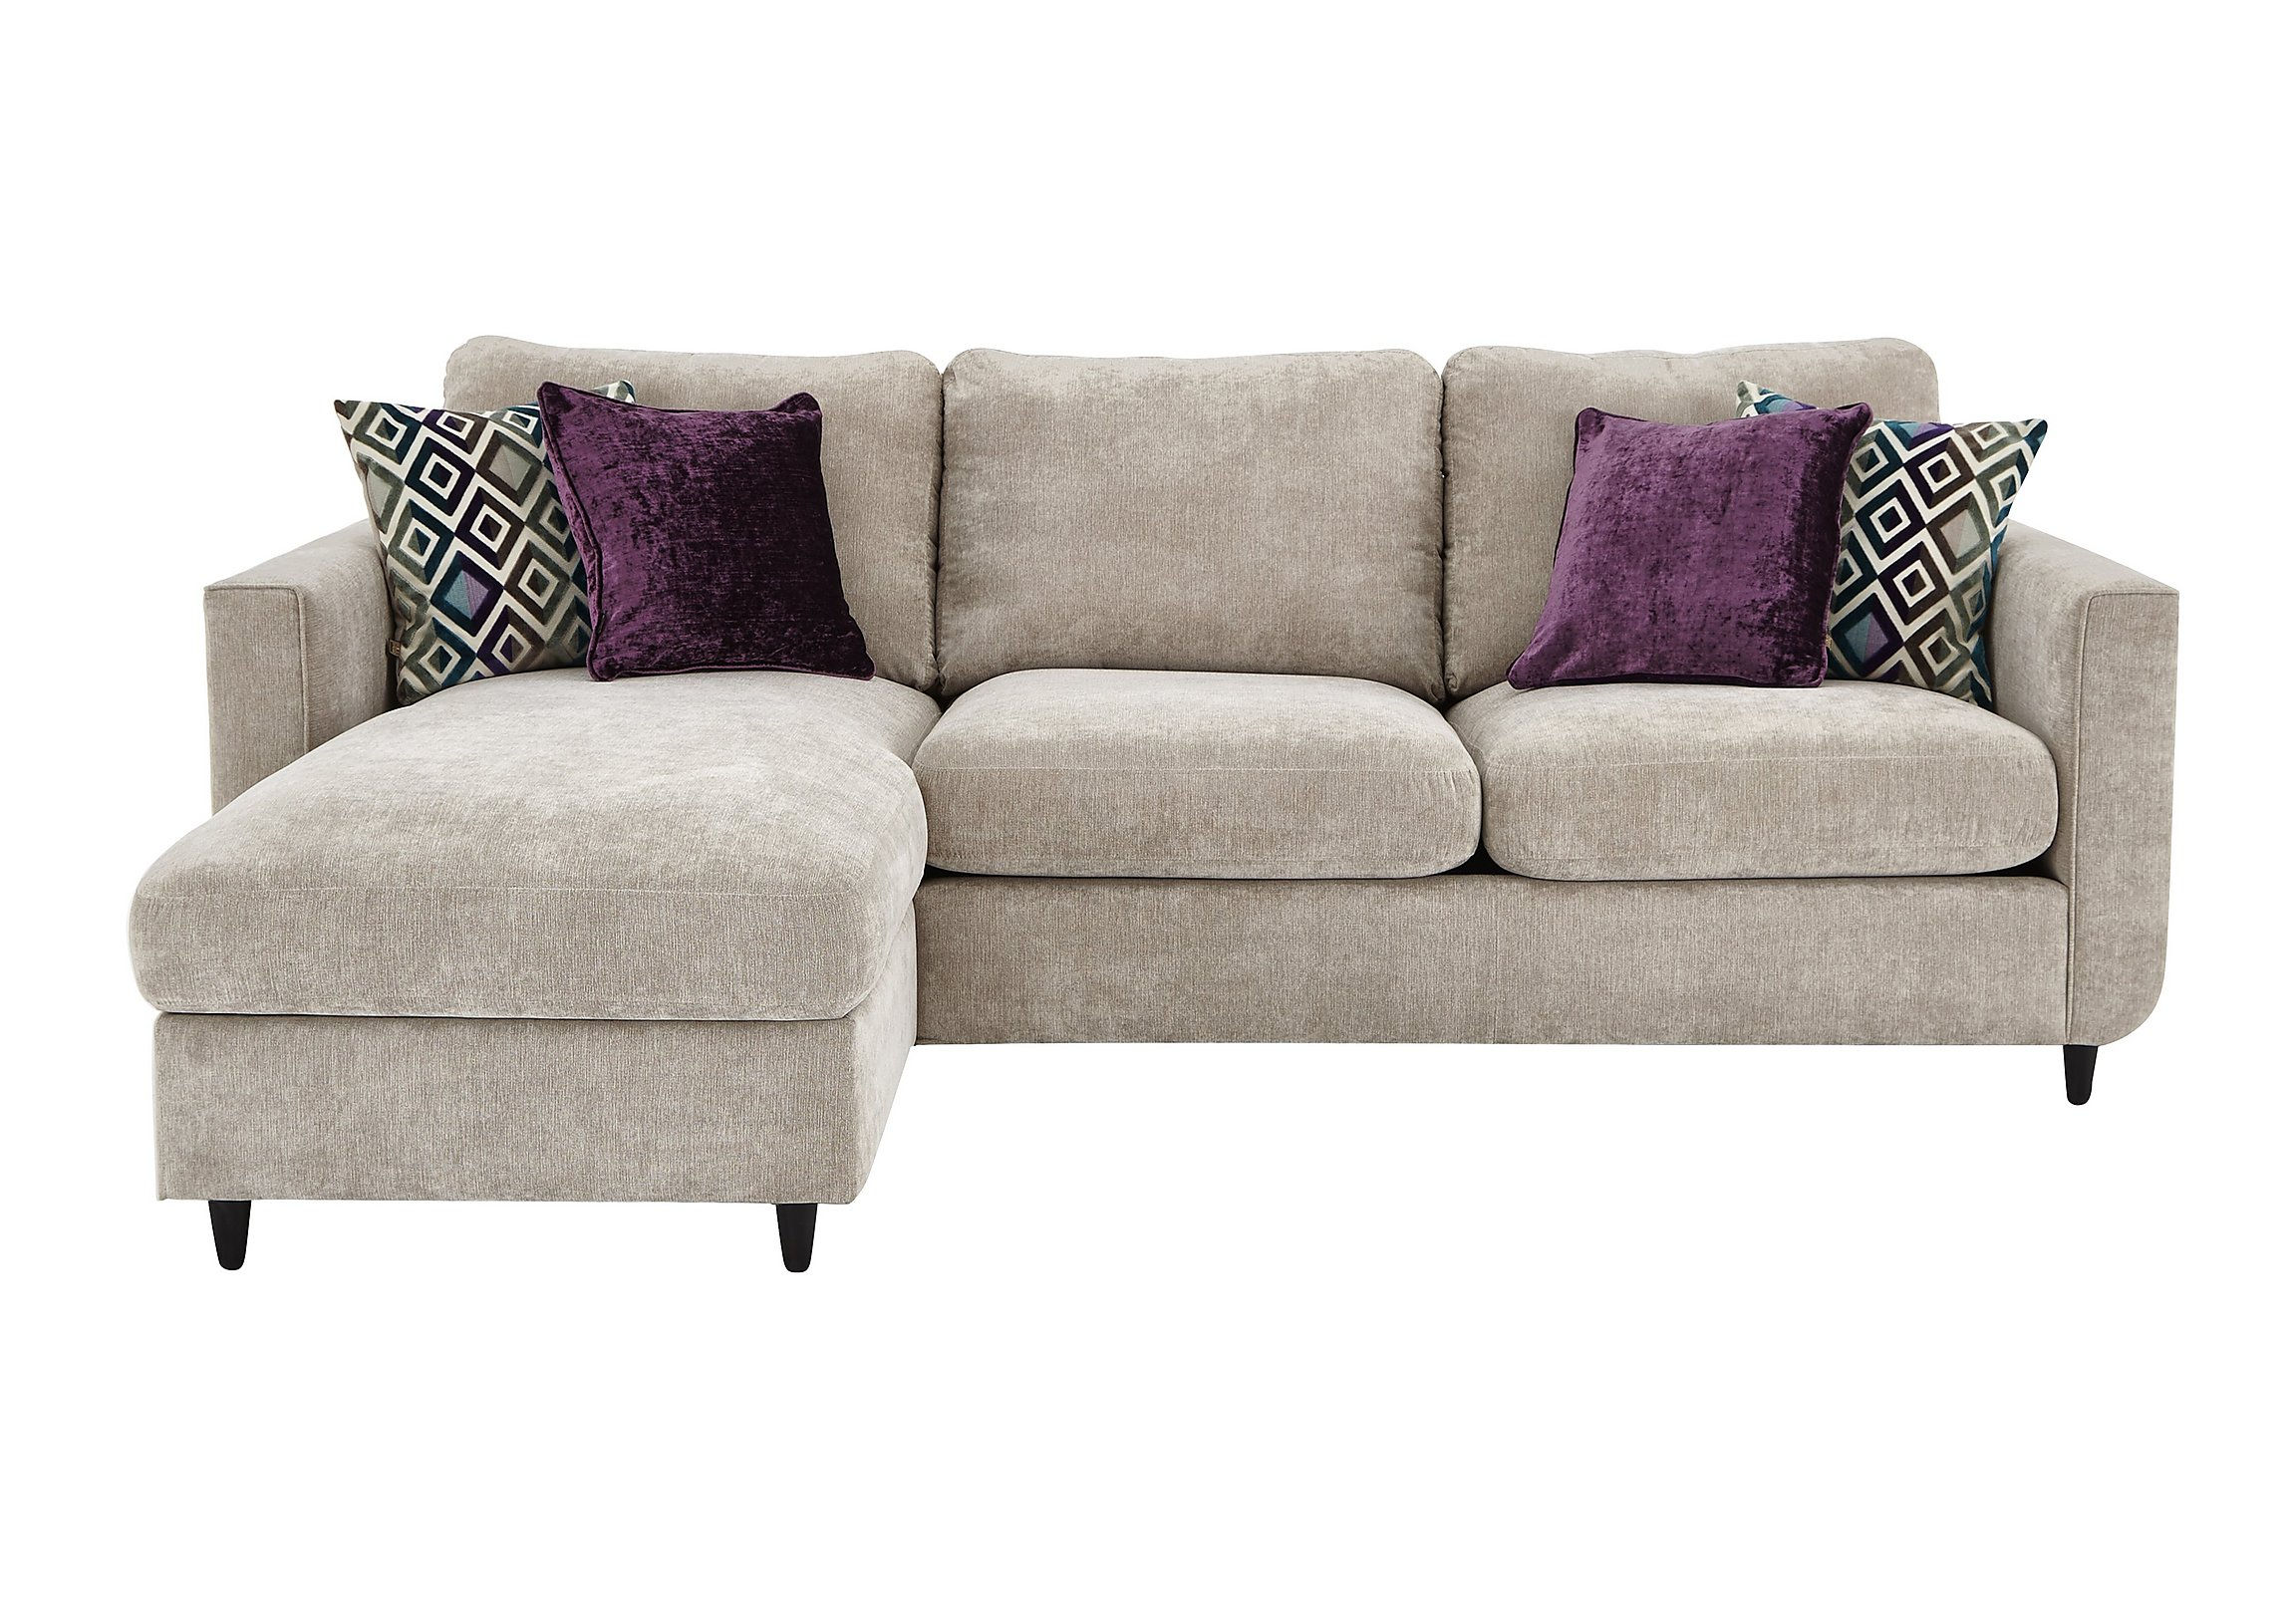 Contemporary furniture sofa - Esprit Fabric Chaise Sofa Bed With Storage